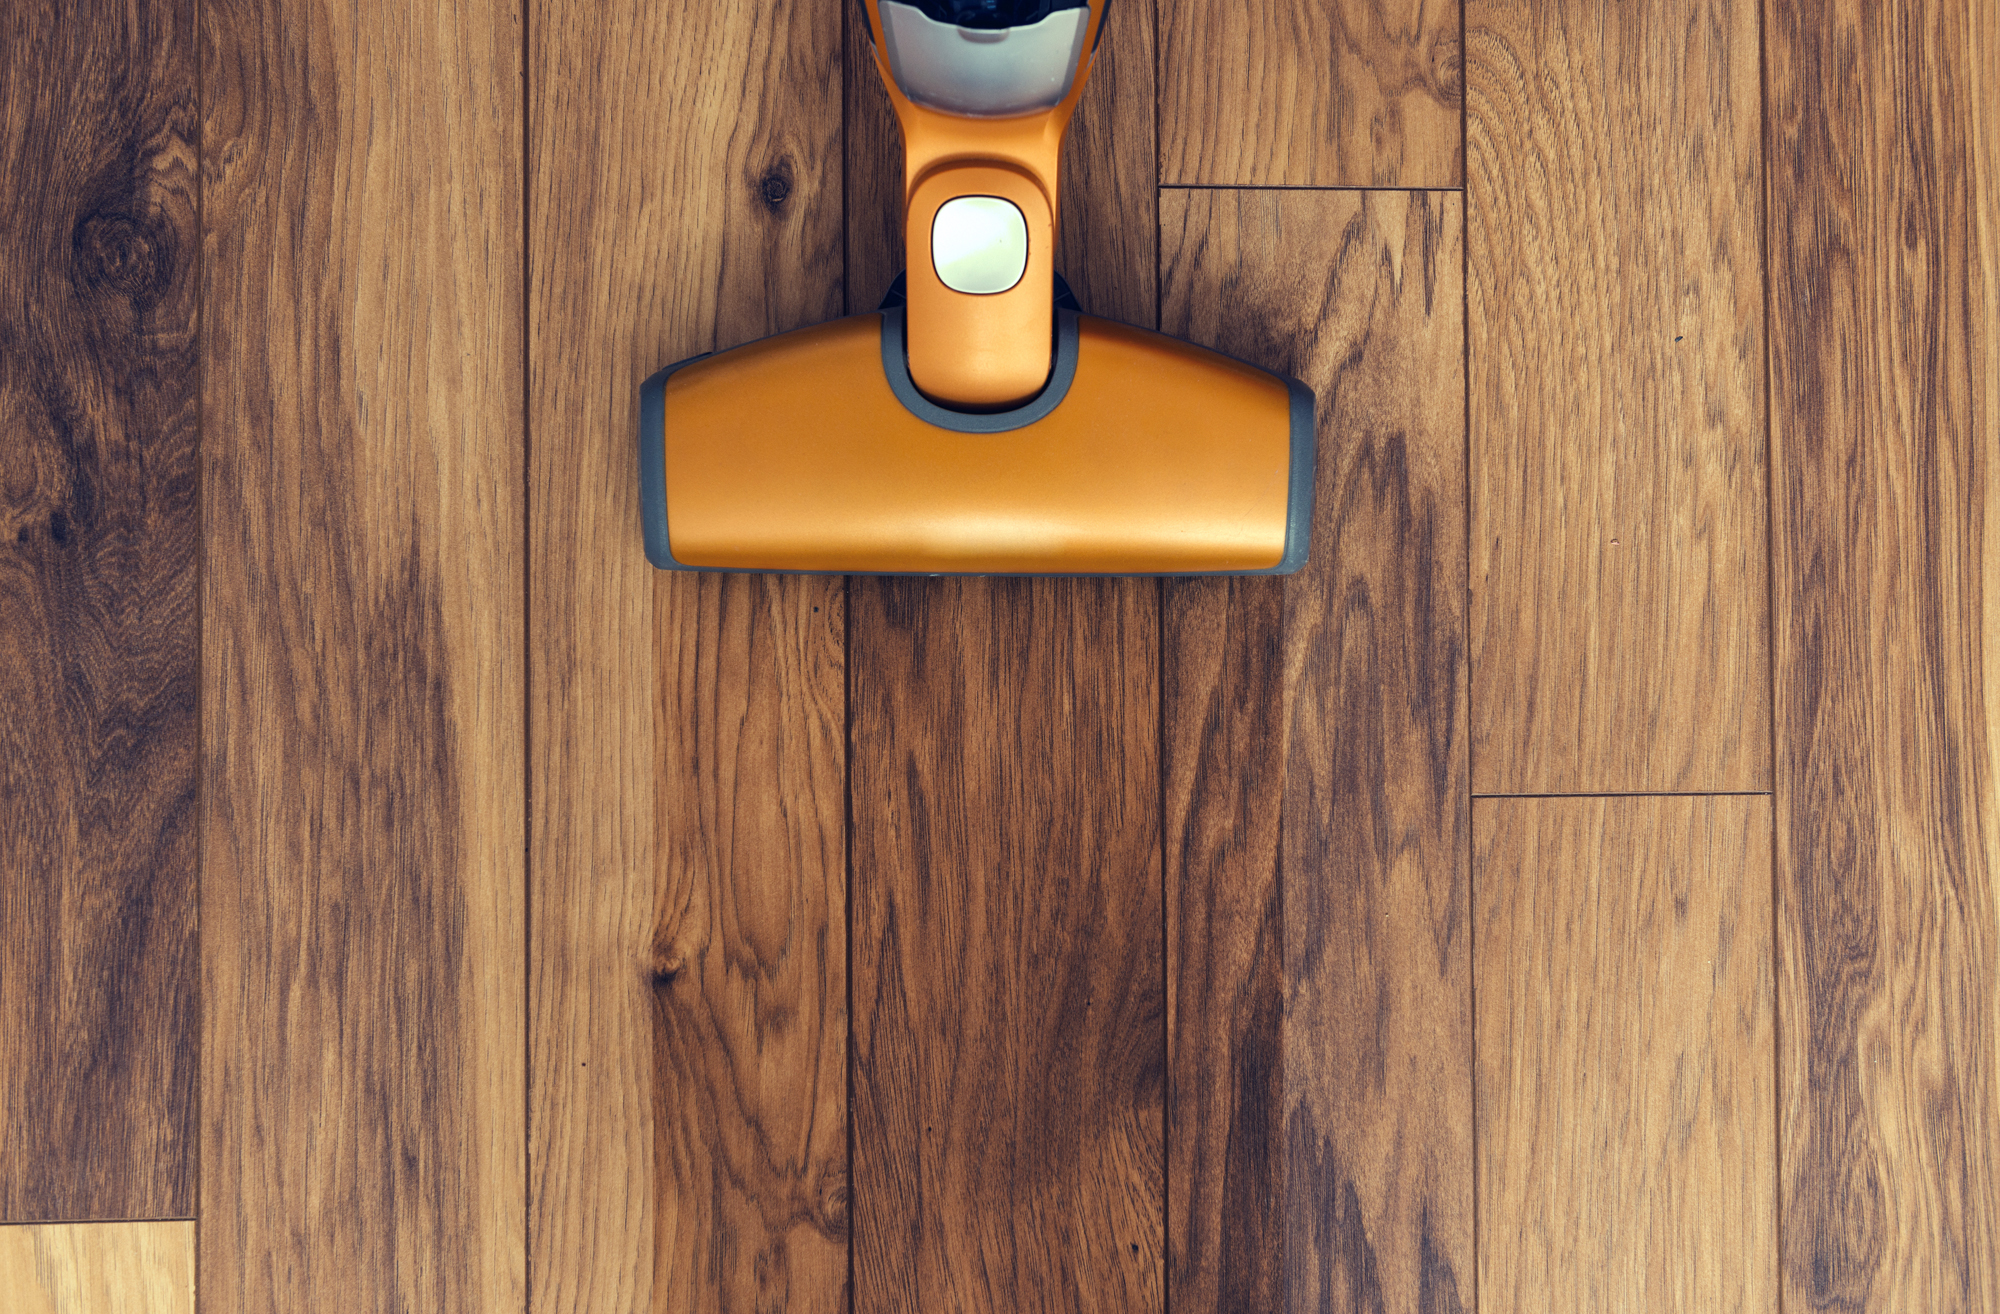 Steam cleaner on wood floor